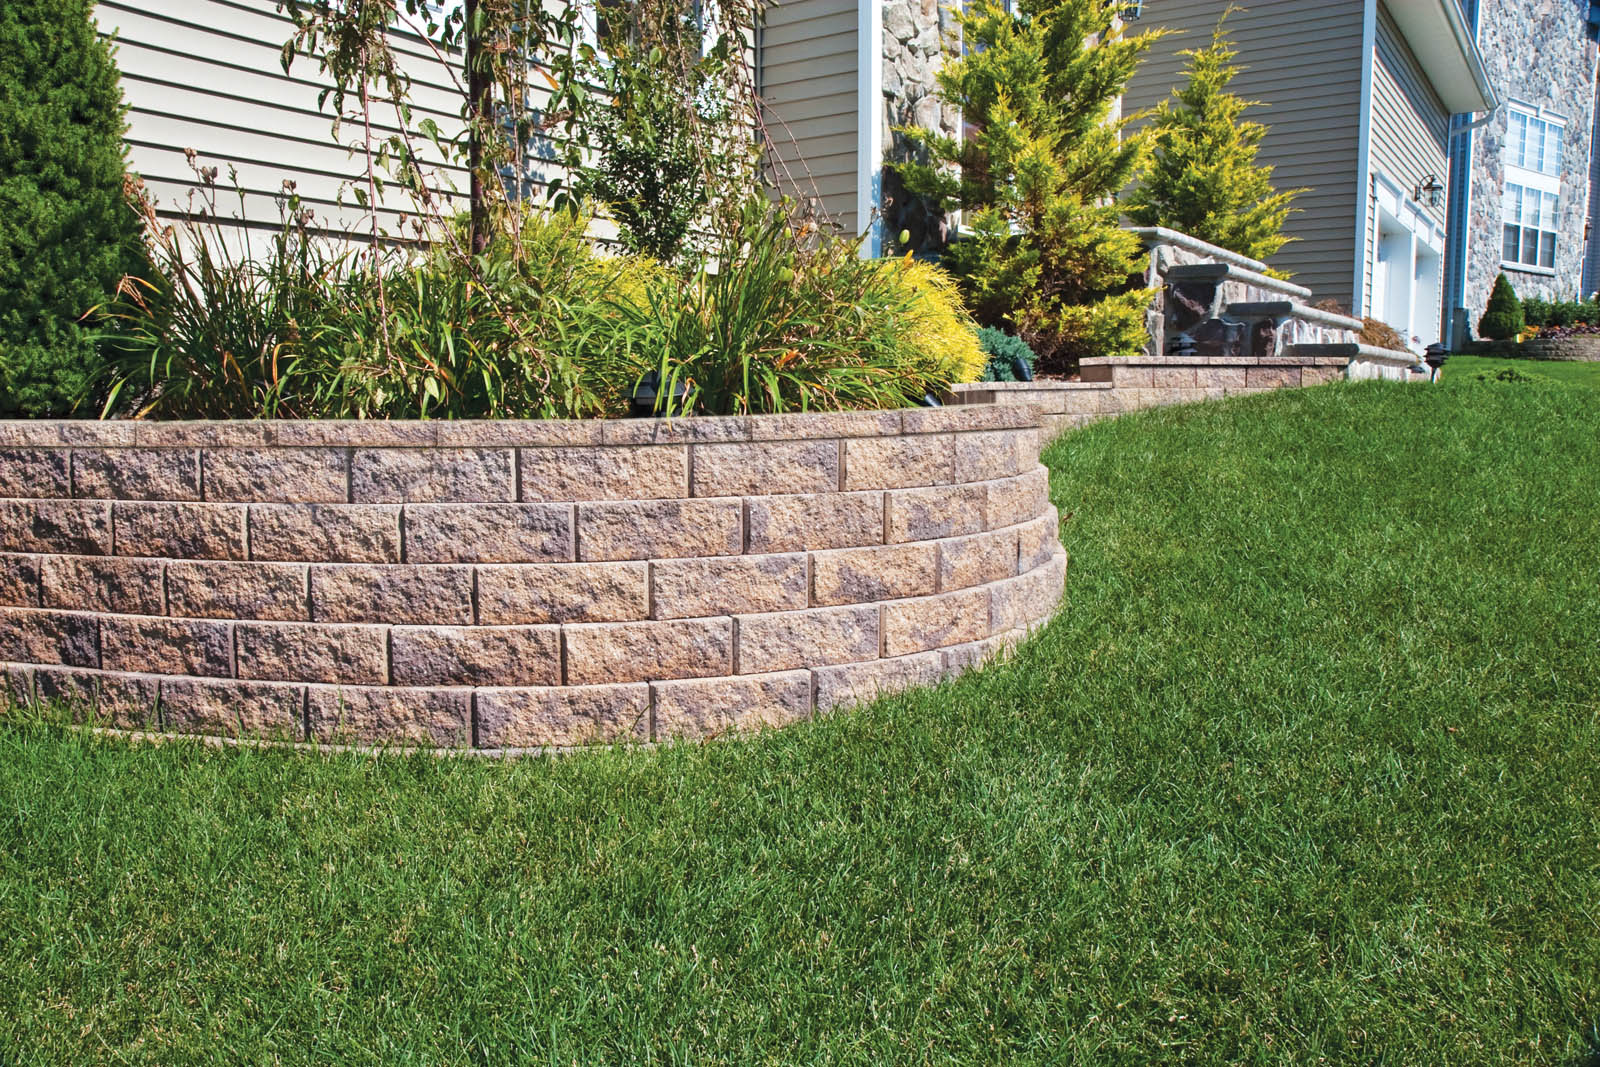 Garden Wall Walls In Sheffield Check A Trade Approved Pavers Odd Wiring Ceiling Rose Diynotcom Diy And Home Improvement 4 Libertystone Hardscaping Systems